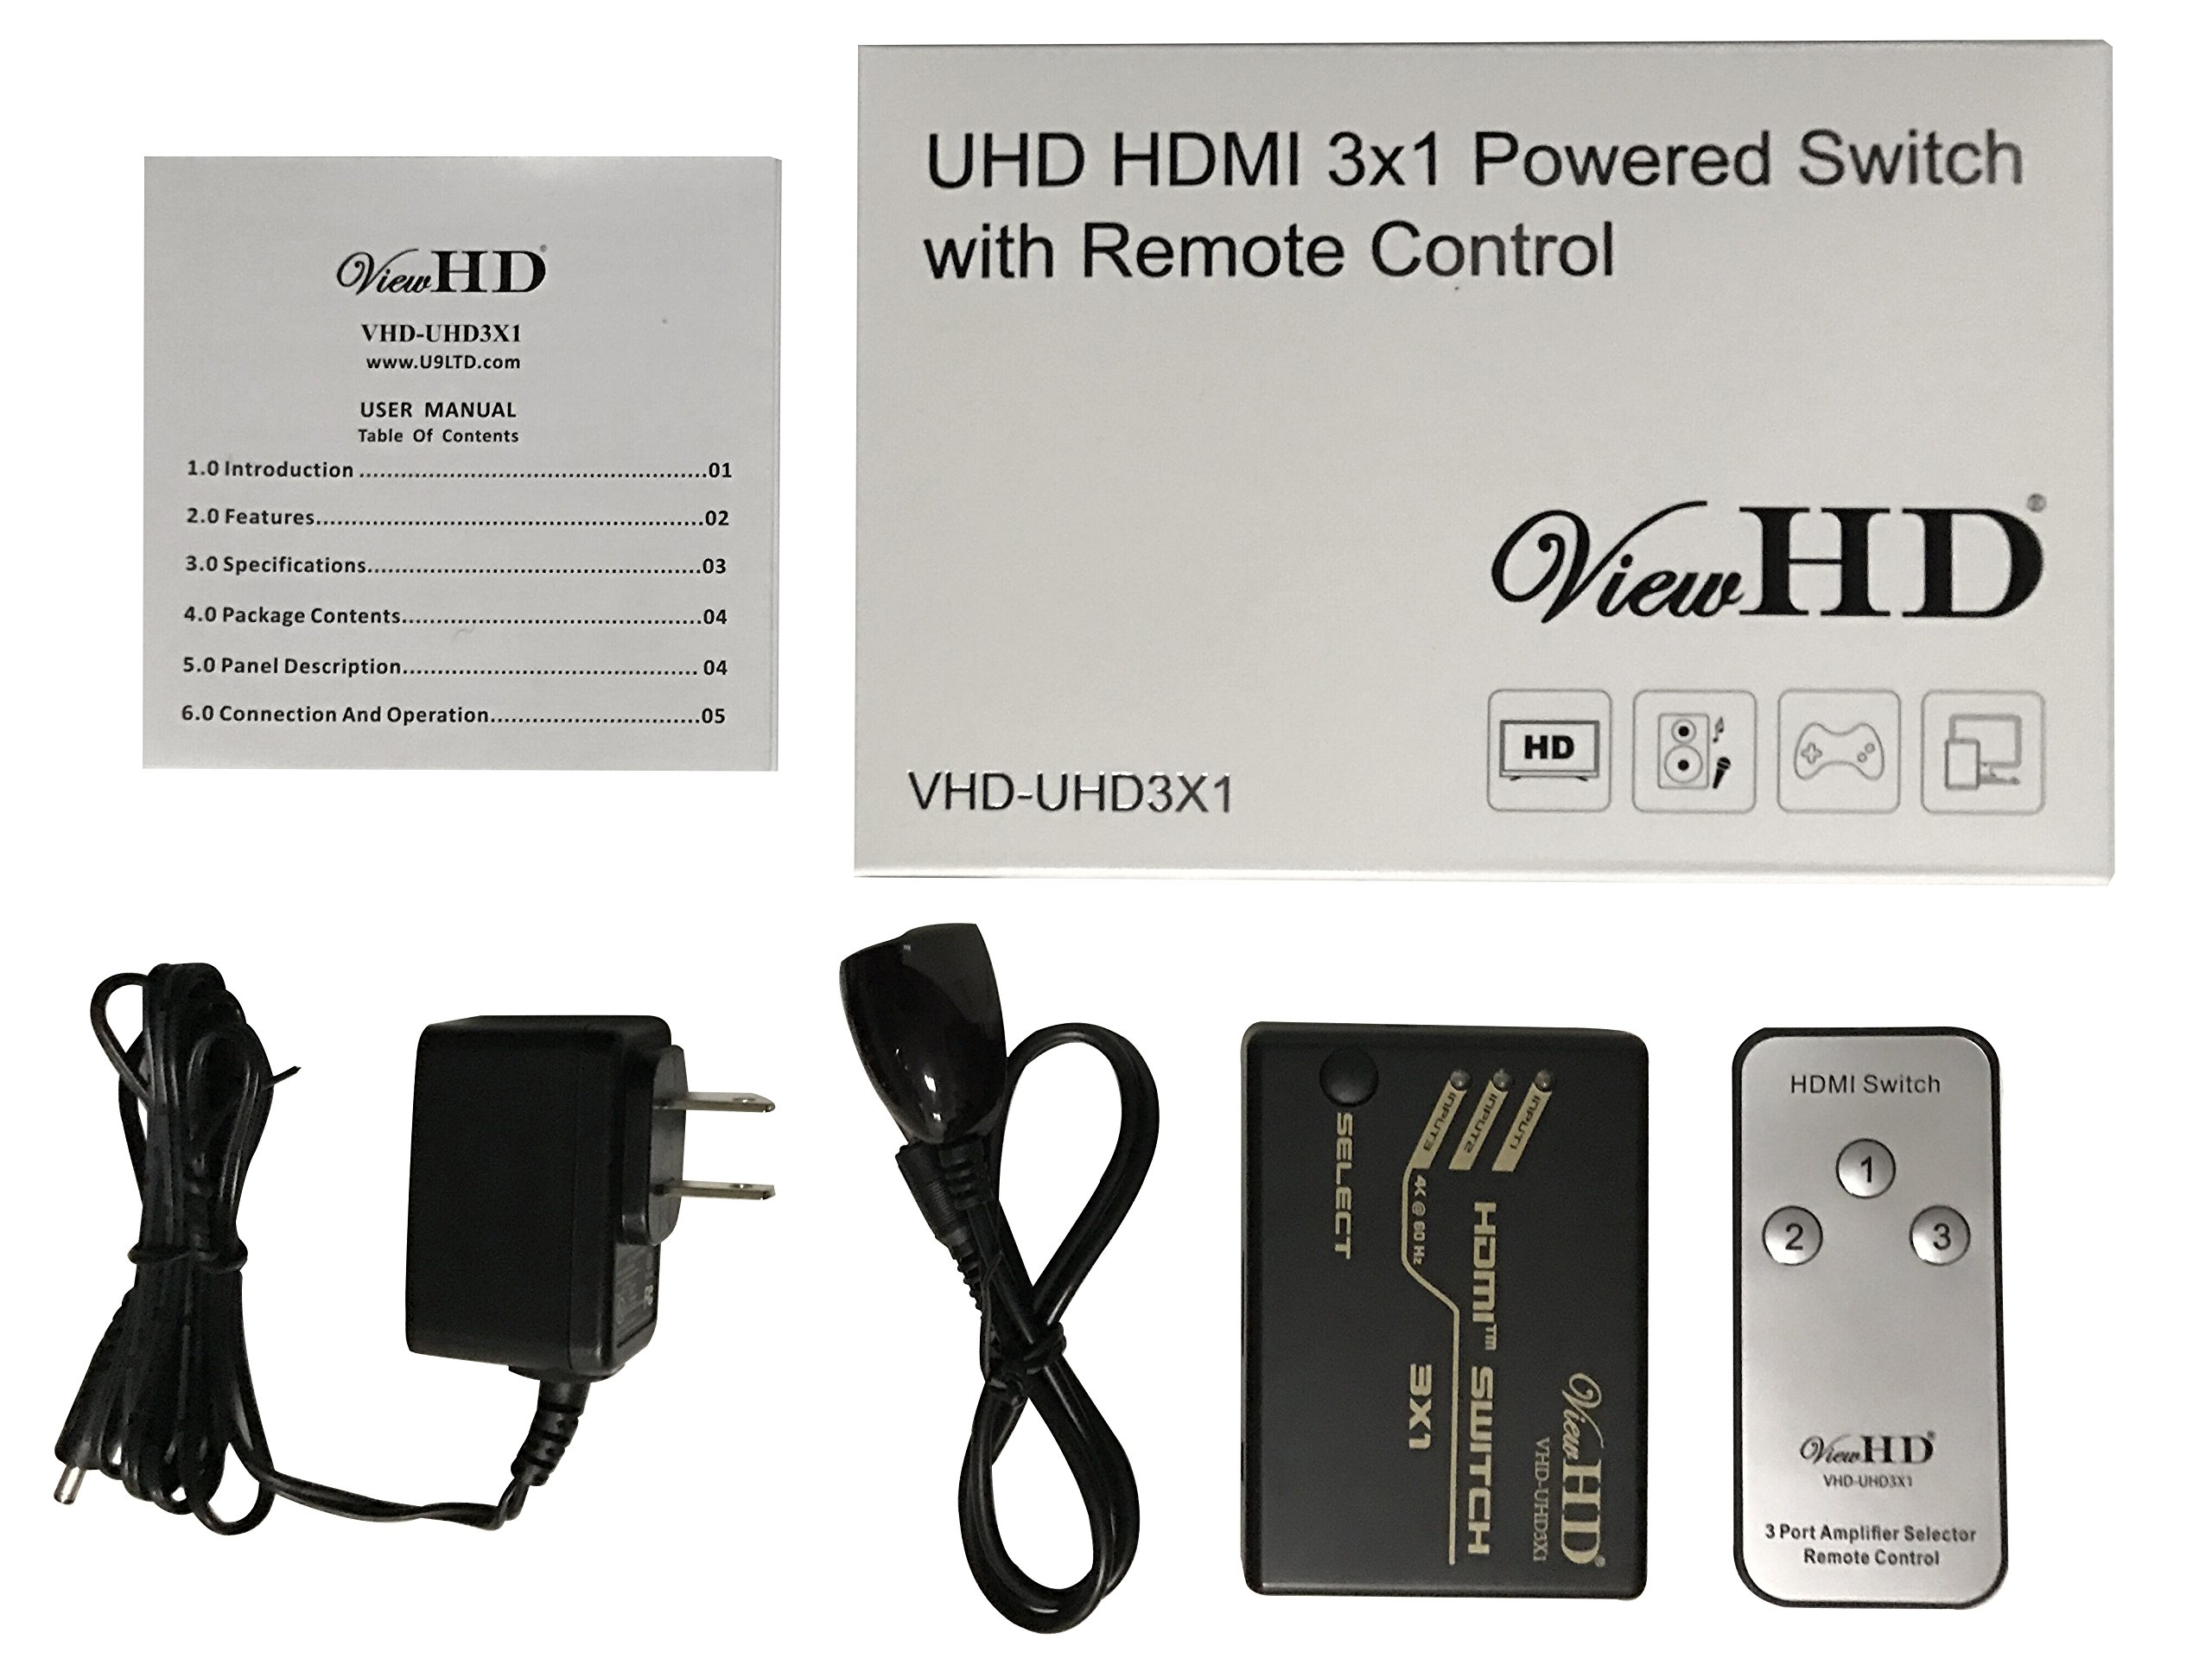 ViewHD UHD HDMI v2.0 3x1 (Three Input to One Output) Powered Switch with Remote Control Support 4K@60Hz   HDR & HDCP 2.2   VHD-UHD3X1 by ViewHD (Image #5)